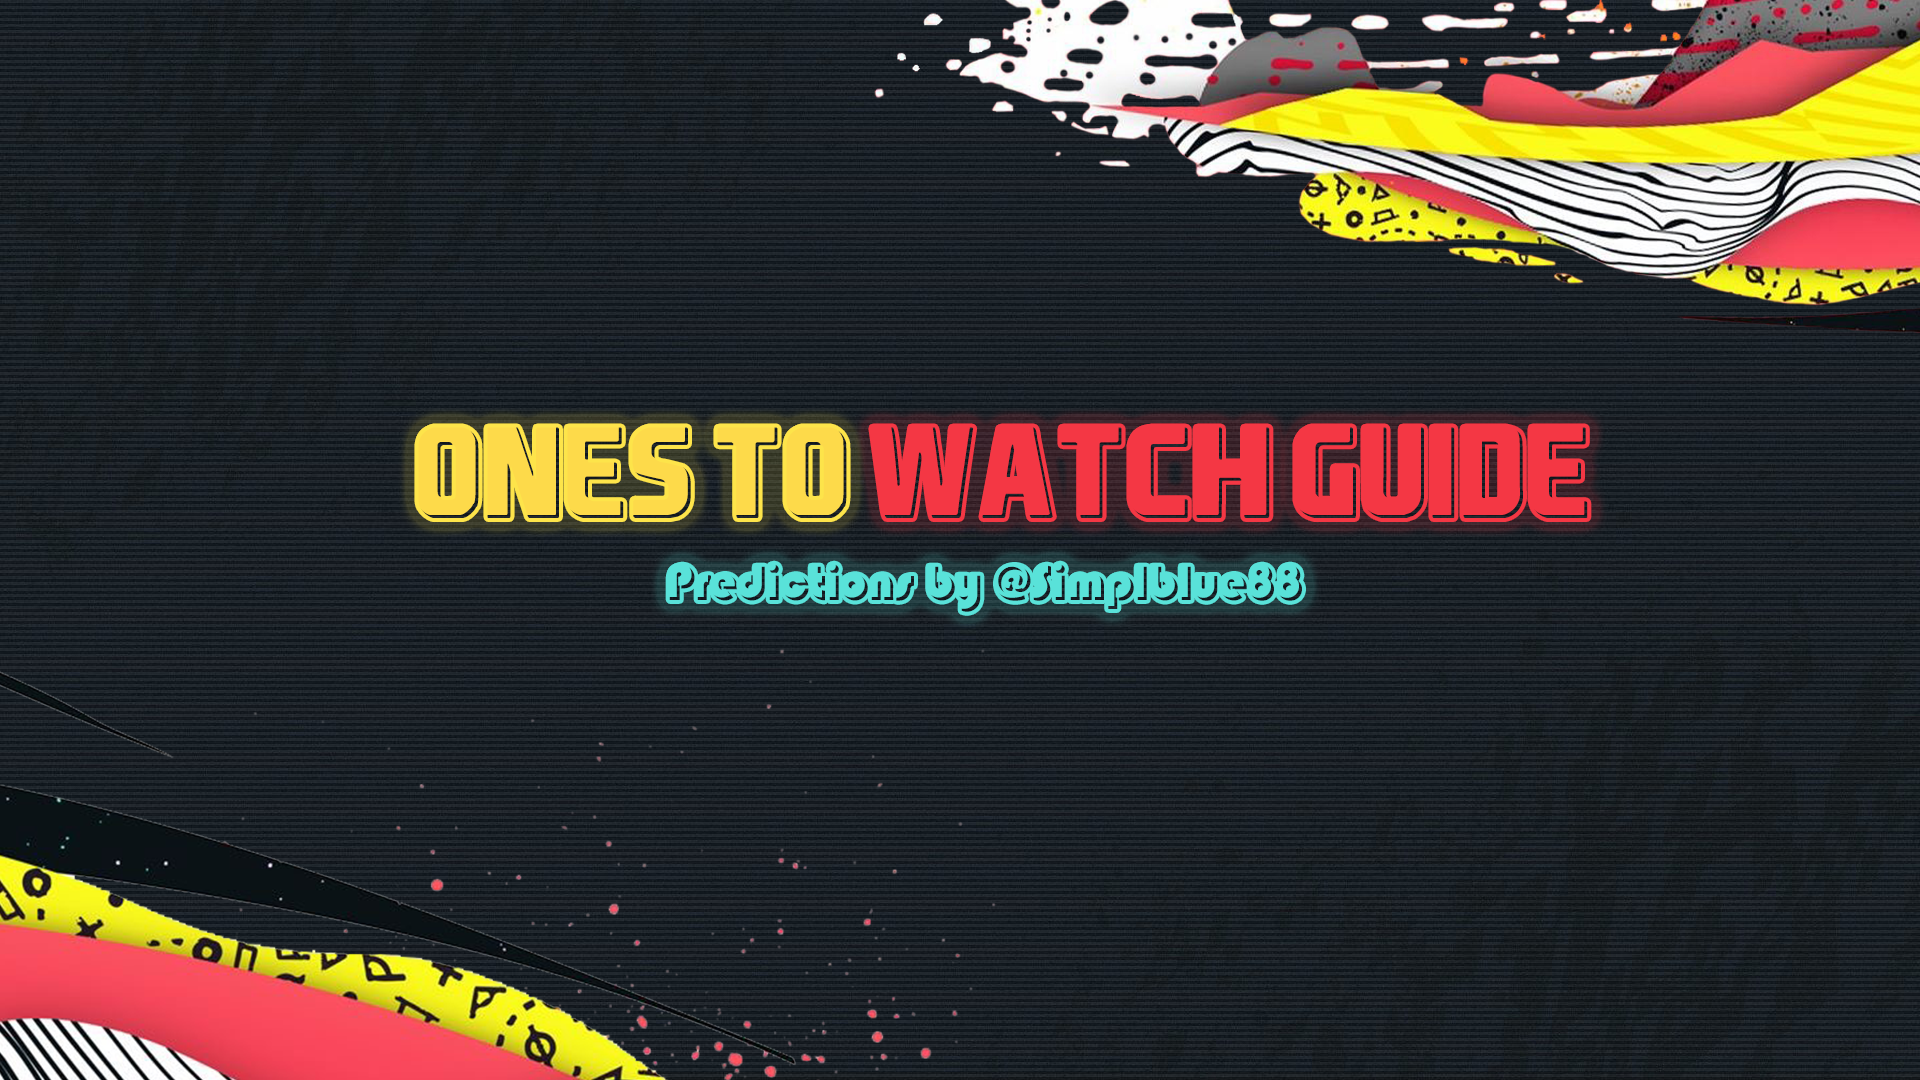 ONES TO WATCH GUIDE